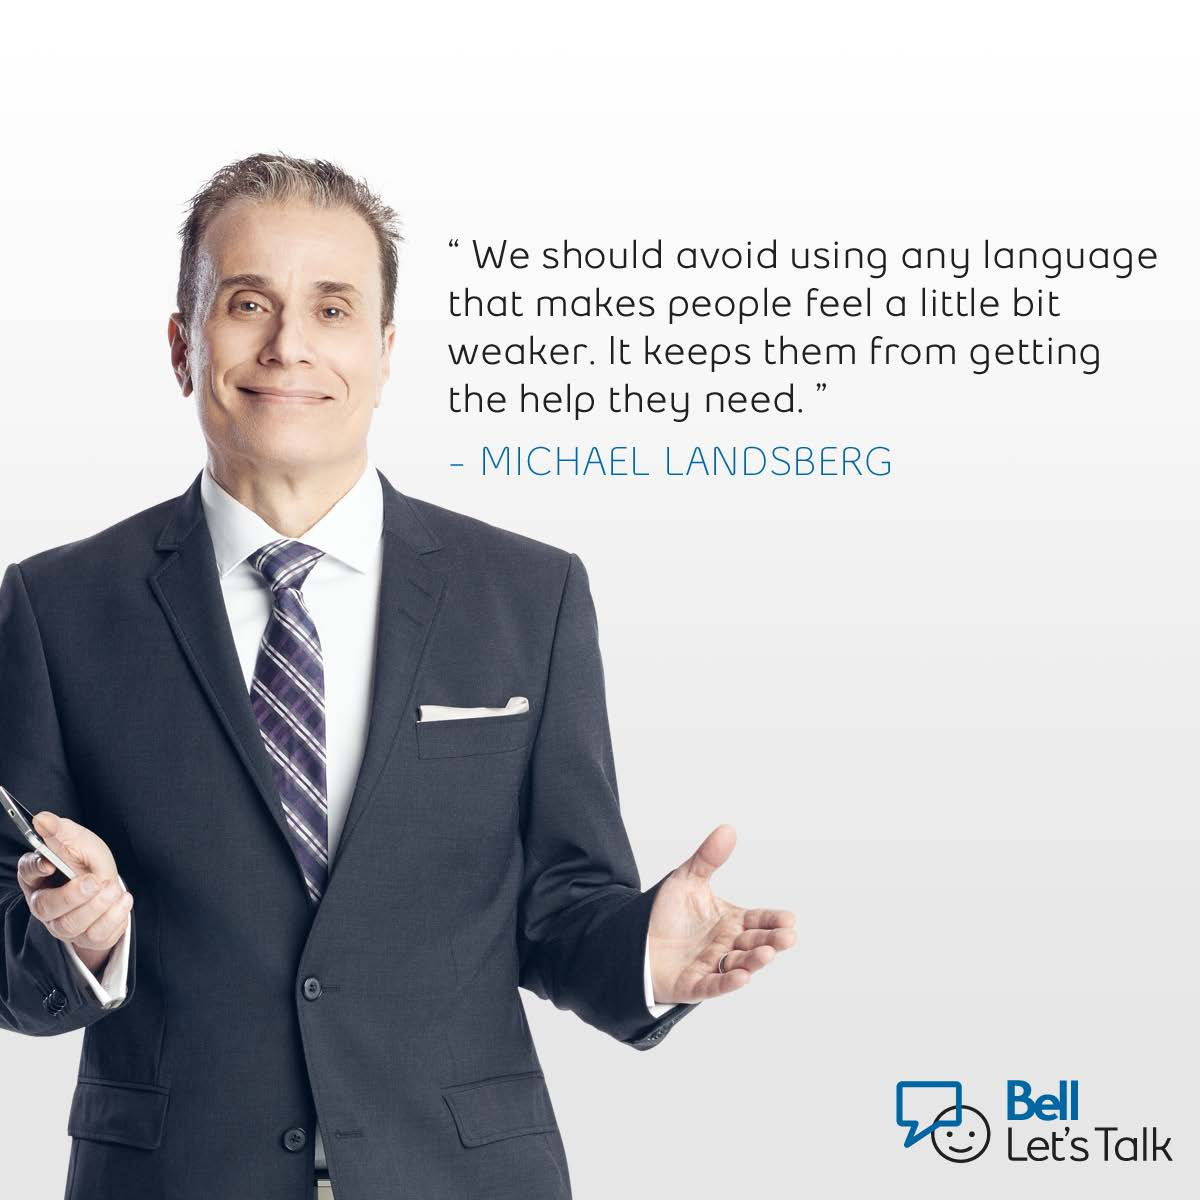 Bell will donate 5¢ to mental health for every #BellLetsTalk tweet and RT. Together, let's end the stigma. http://t.co/TTr90WBedB